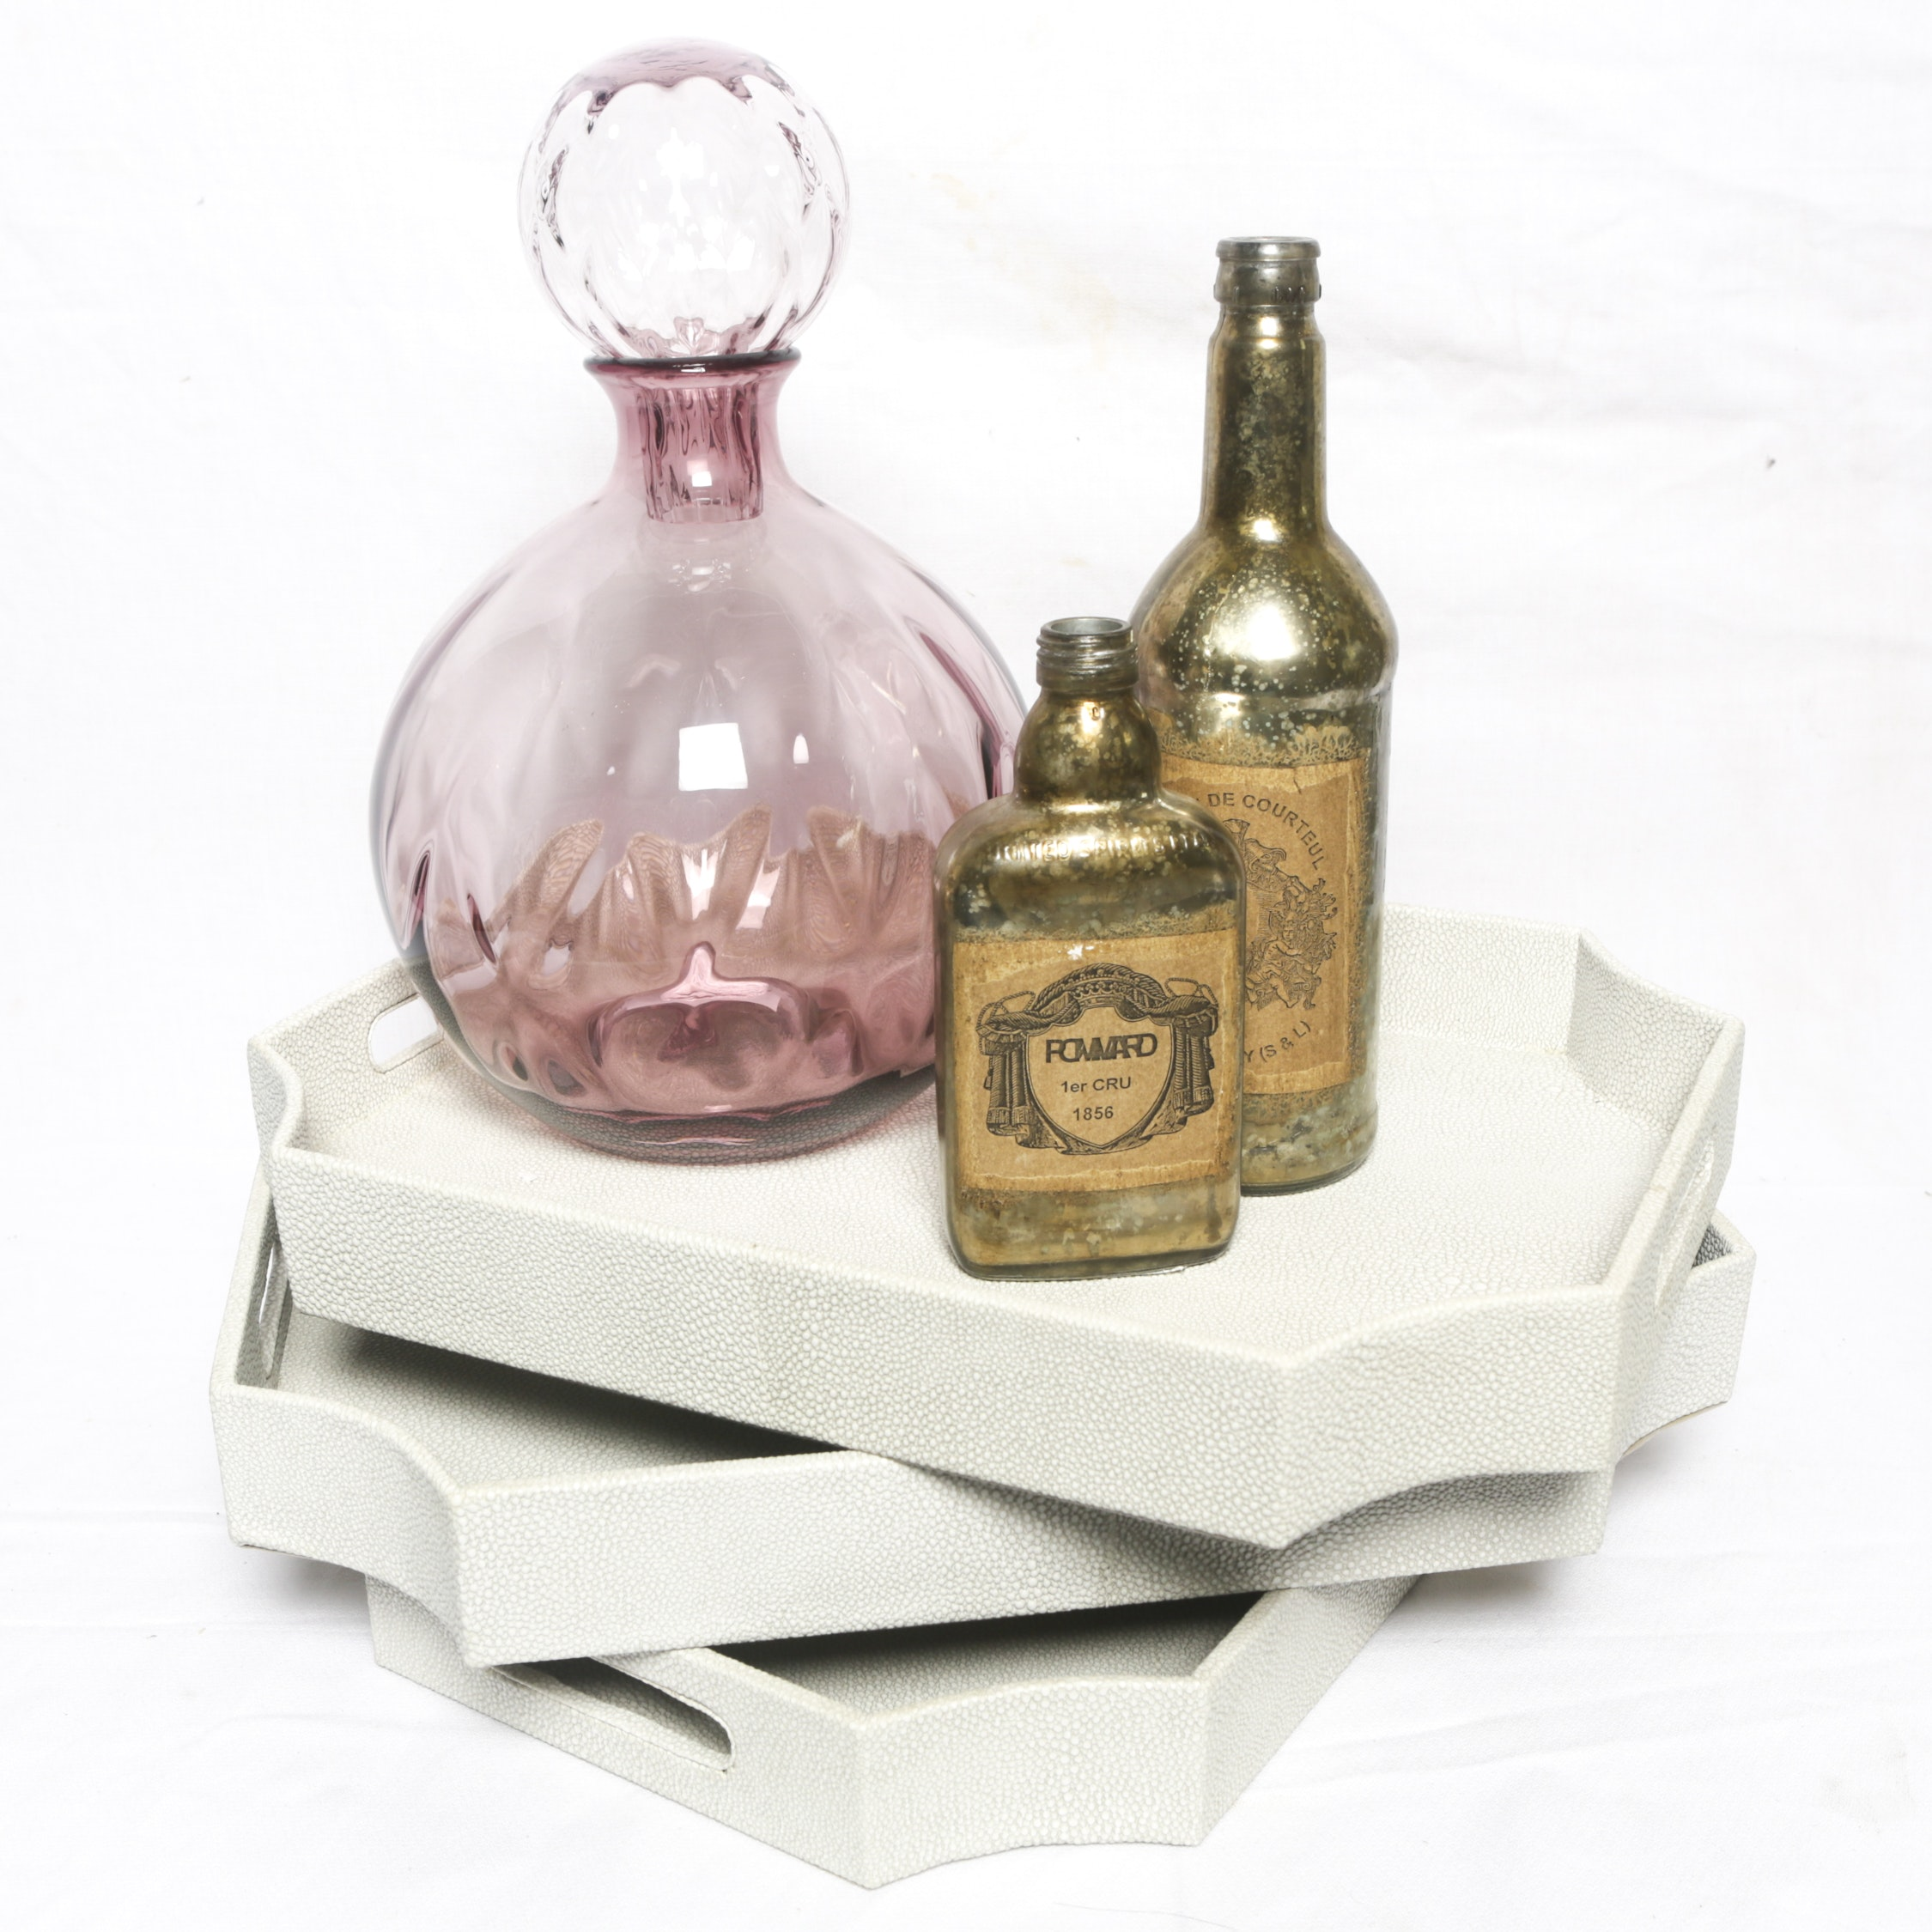 Purple Glass Lidded Jar with Apothecary Style Bottles and Trays